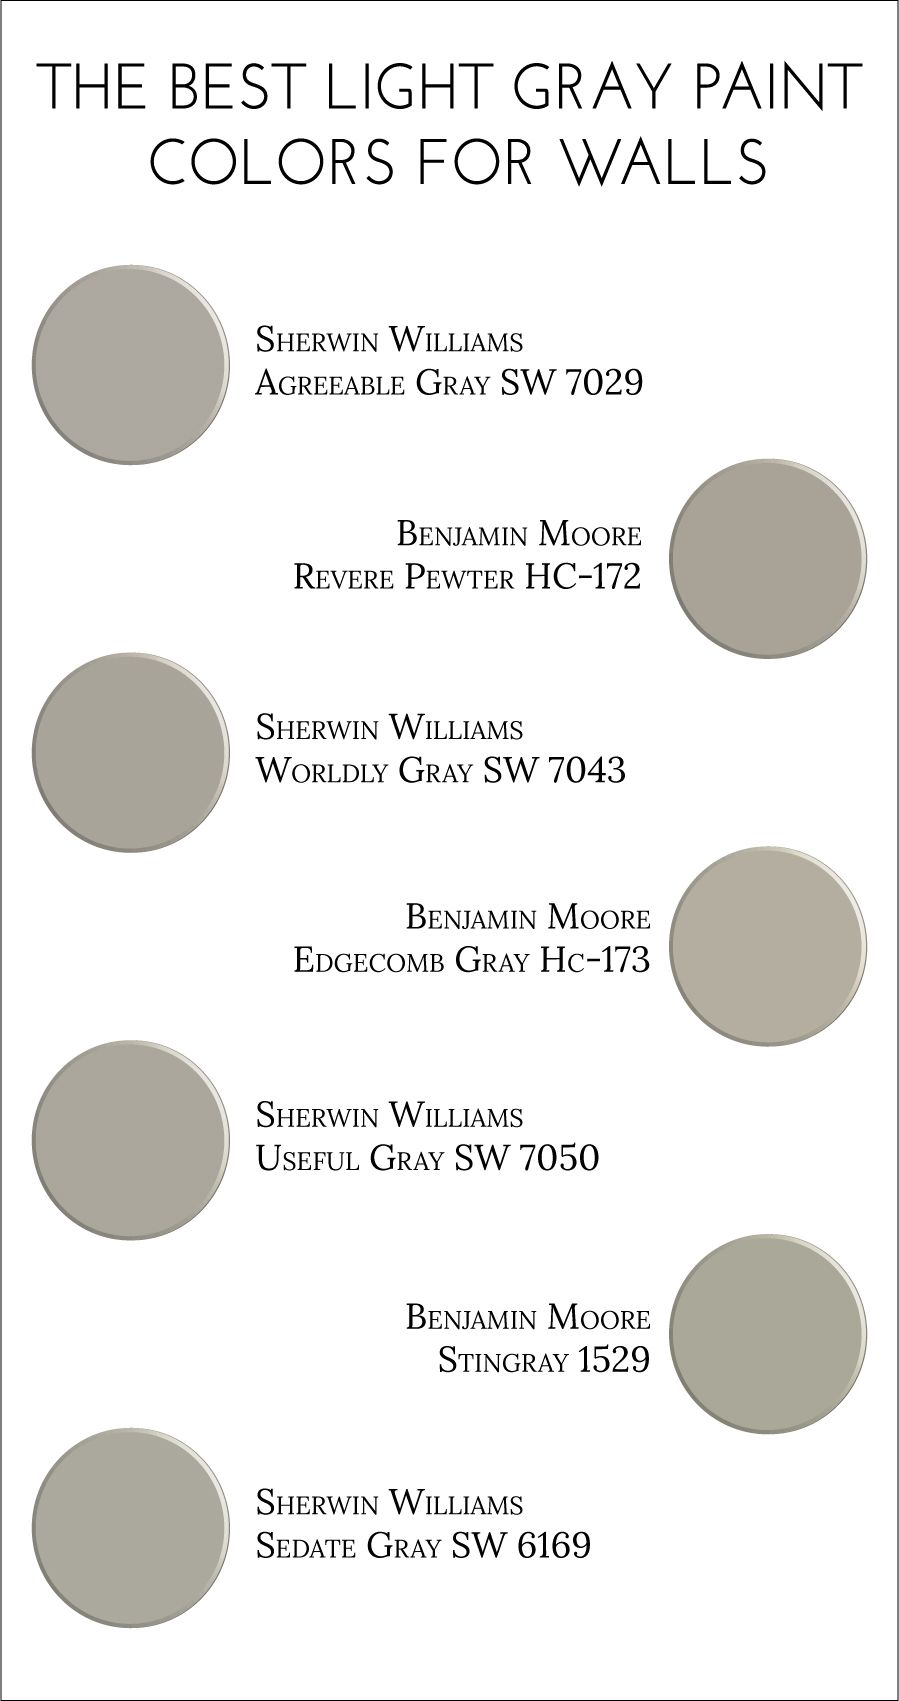 The best light gray paint colors for walls light grey Great paint colors